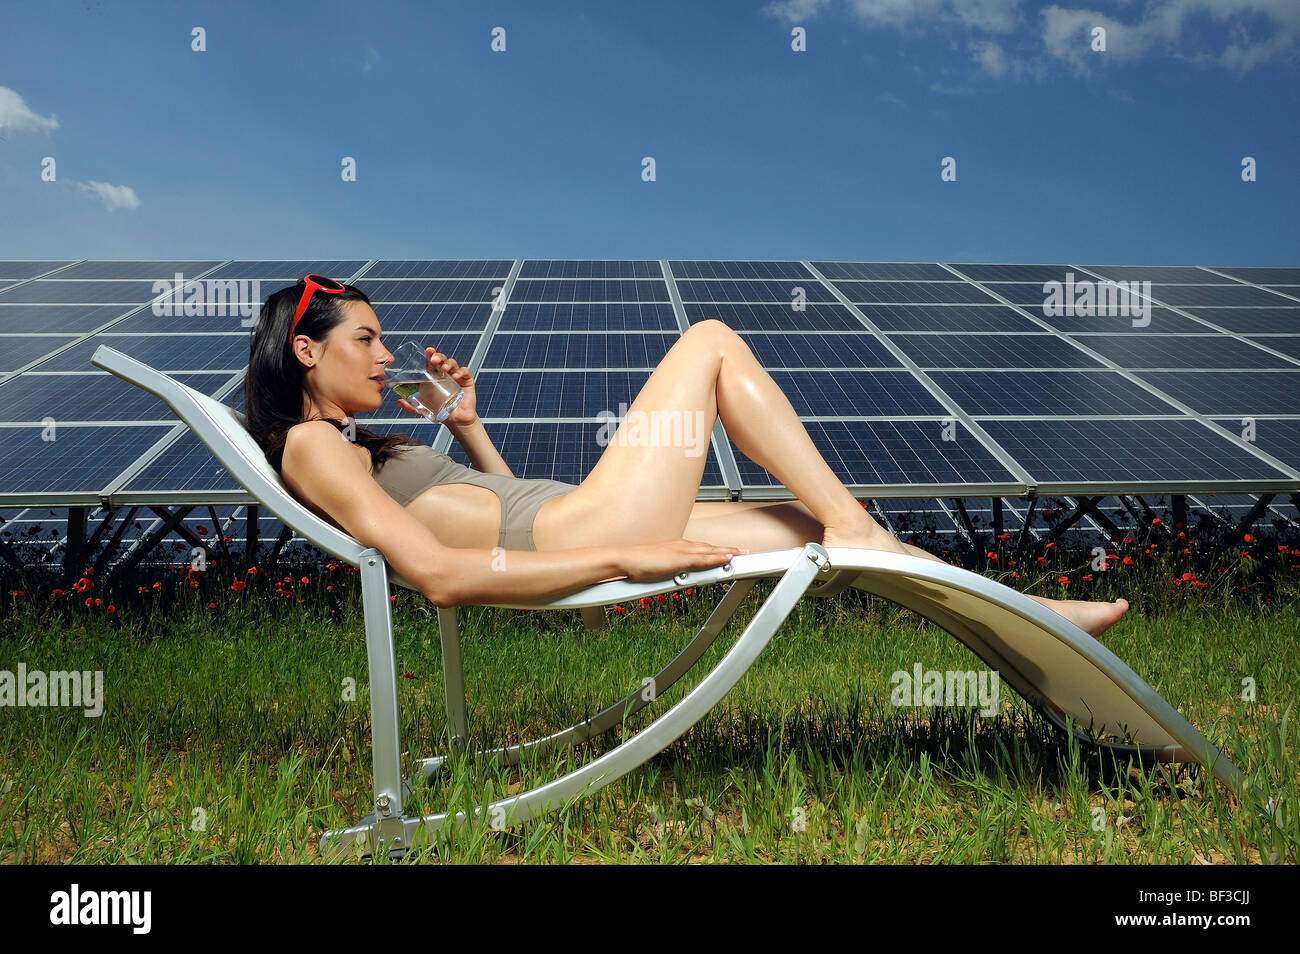 woman sunbathing in front of solar panel - Stock Image